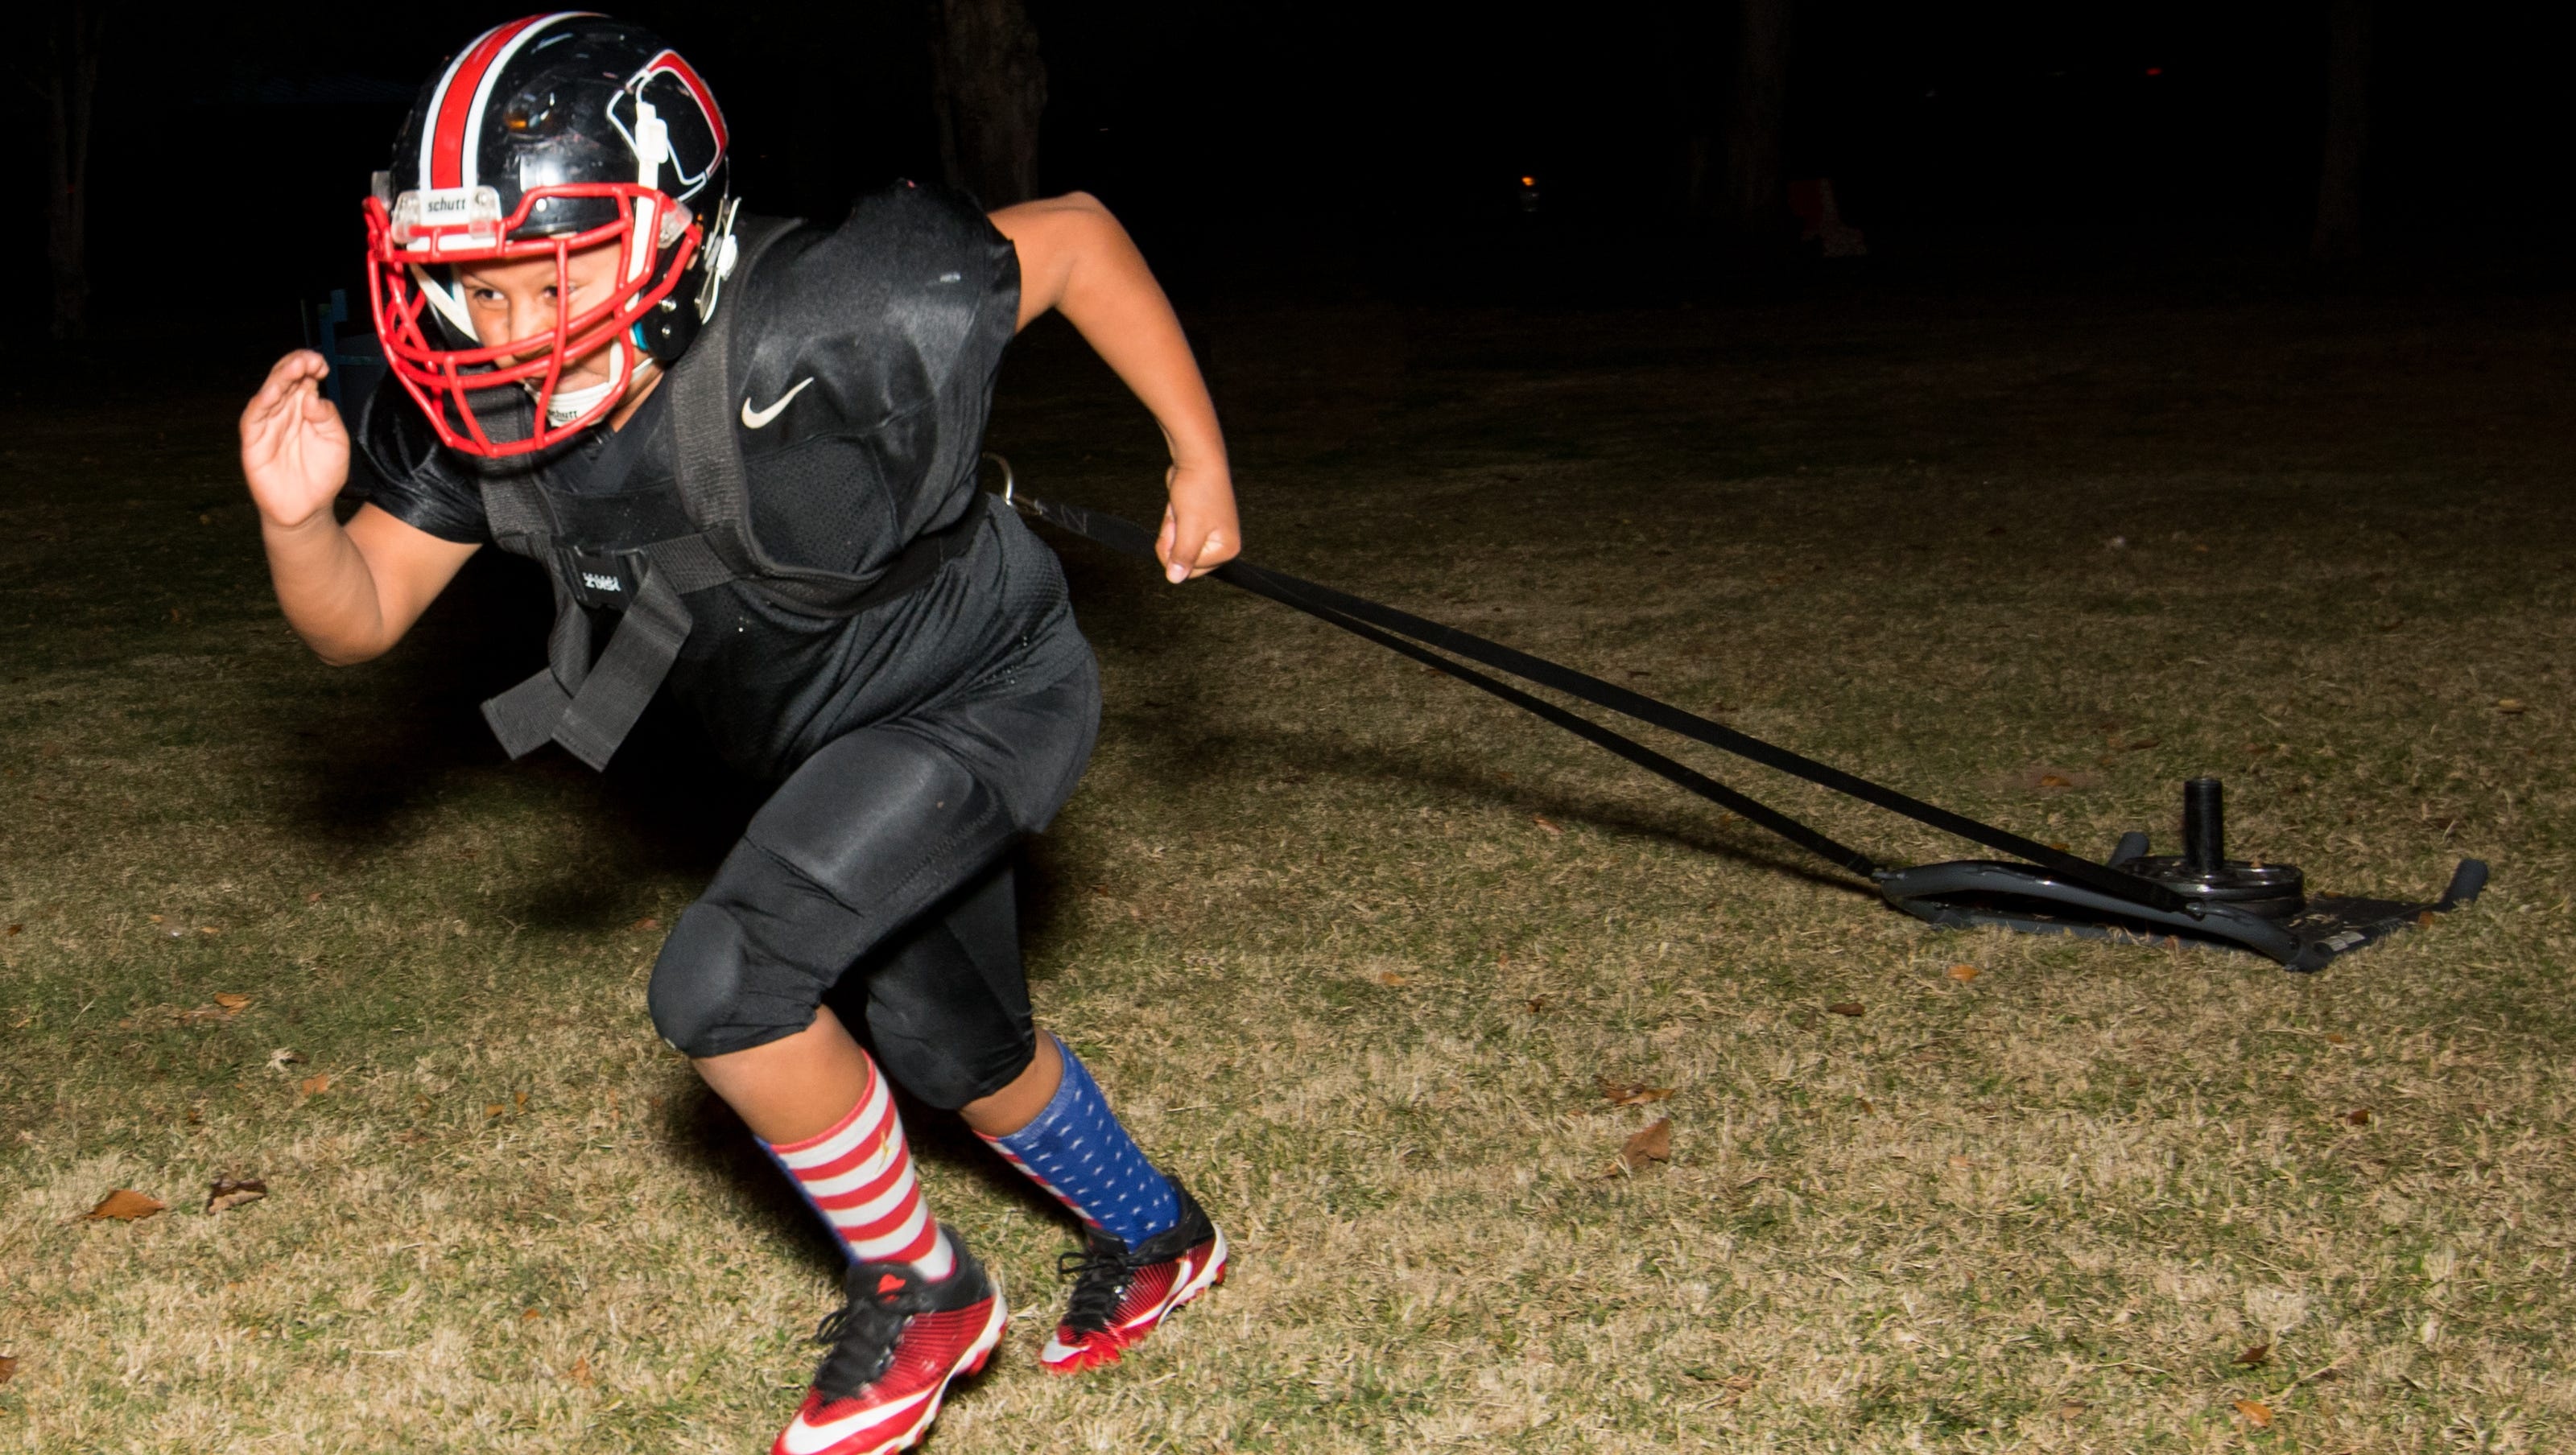 las cruces nerf league Ineligible player sparks turmoil in youth football league